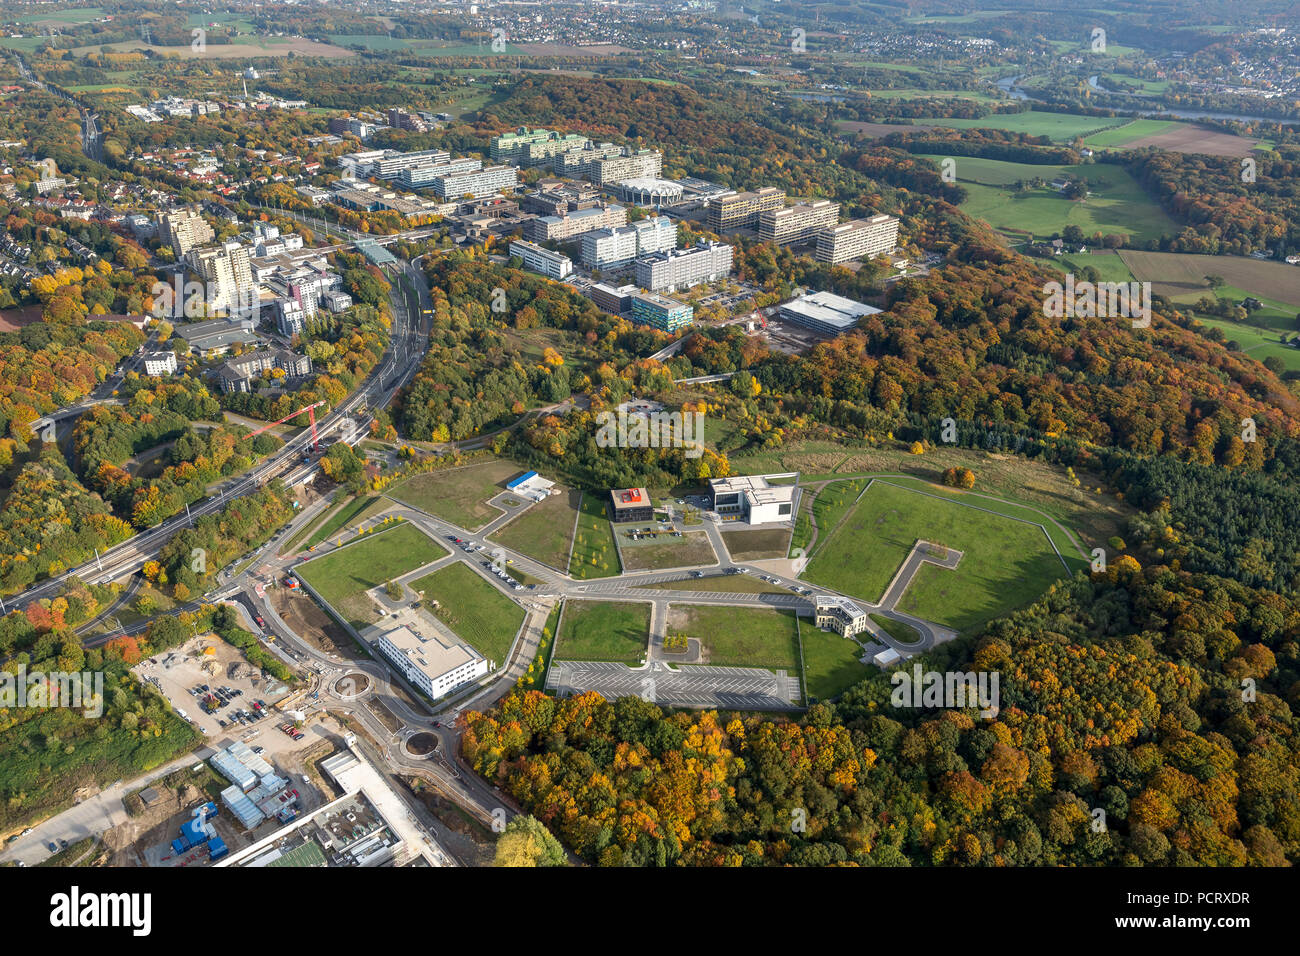 BioMedicine Park health campus, aerial view of Bochum - Stock Image